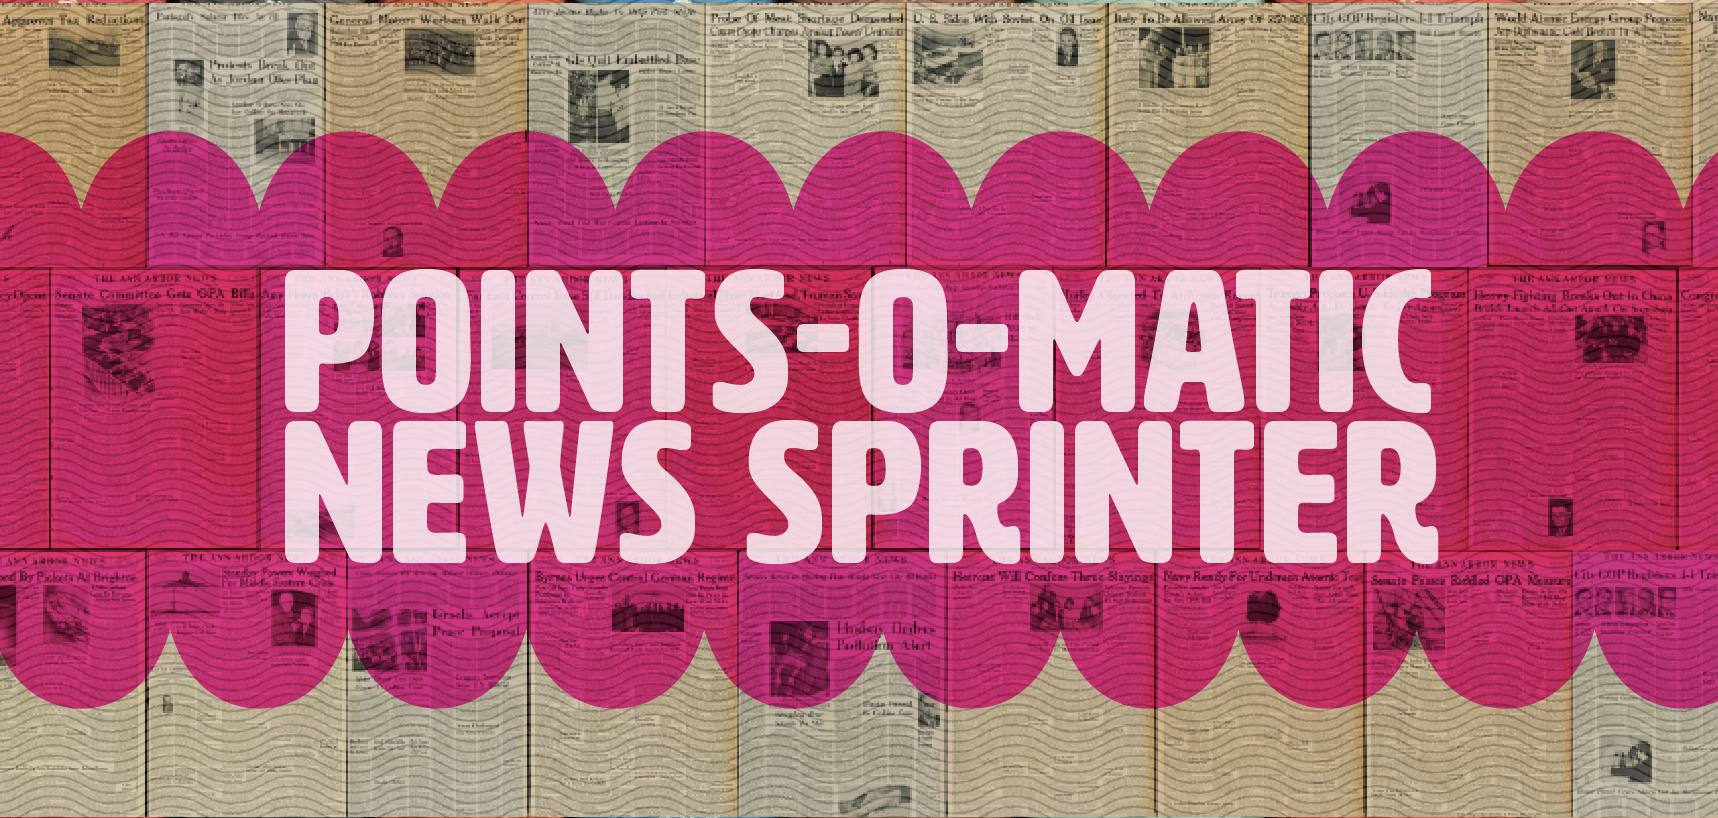 Points-O-Matic News Sprinter. .